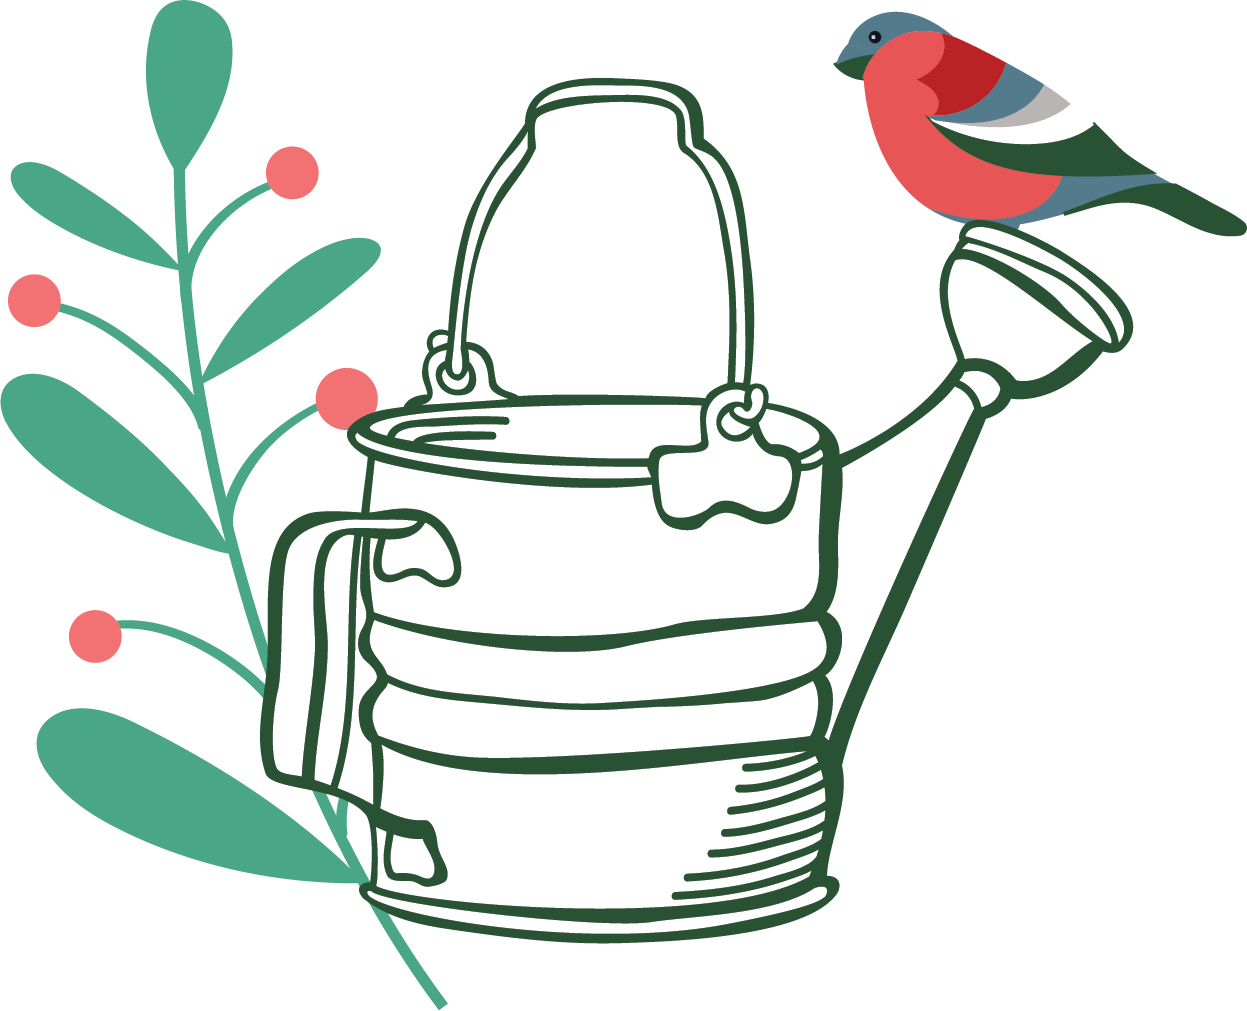 Beautifully Colored Winter Bird Perched on a Watering Can Illustration